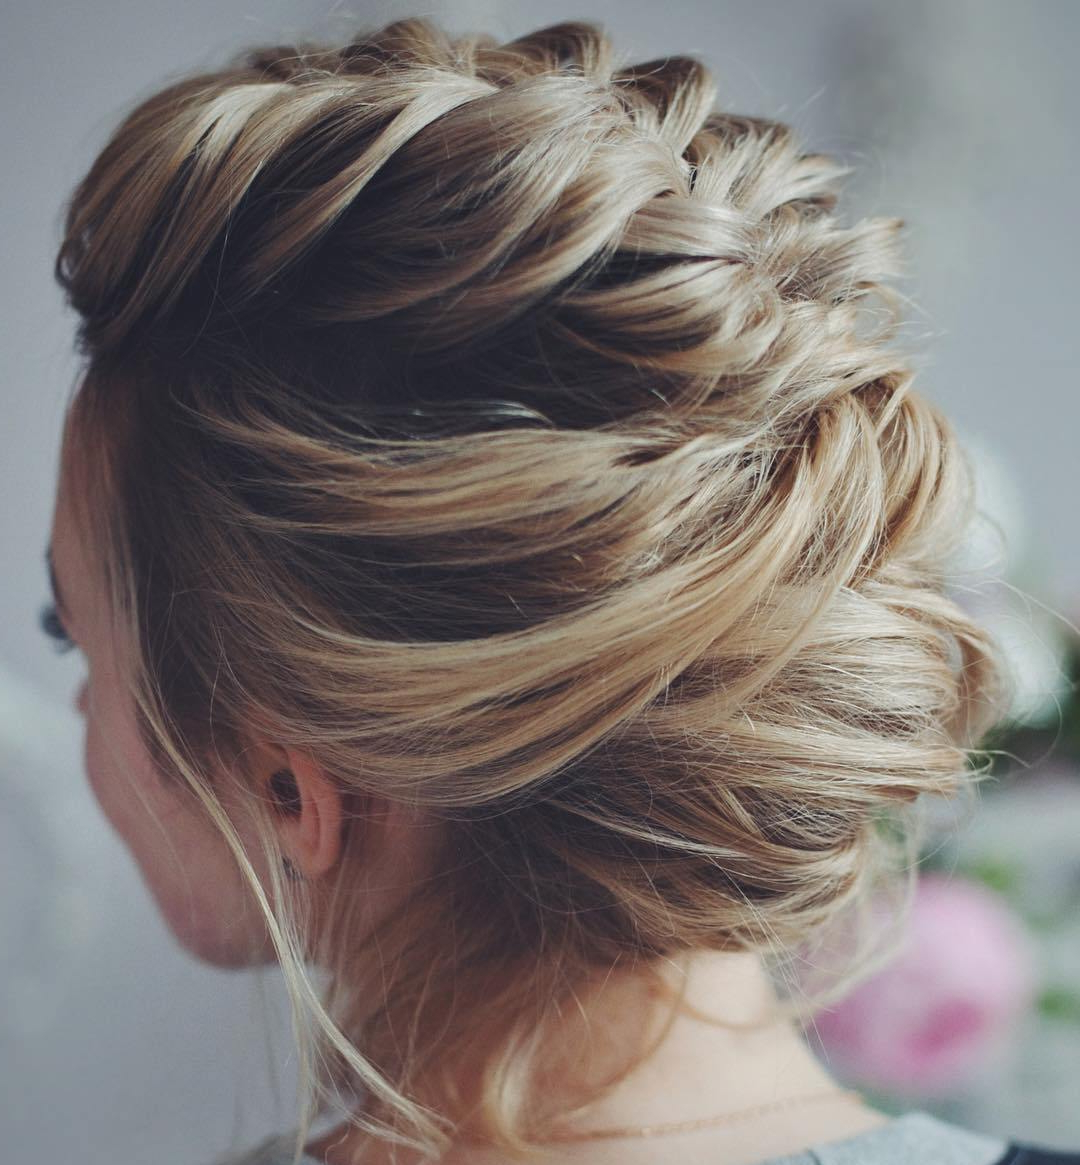 50 Hottest Prom Hairstyles For Short Hair With Favorite Curly Ash Blonde Updo Hairstyles With Bouffant And Bangs (View 6 of 20)